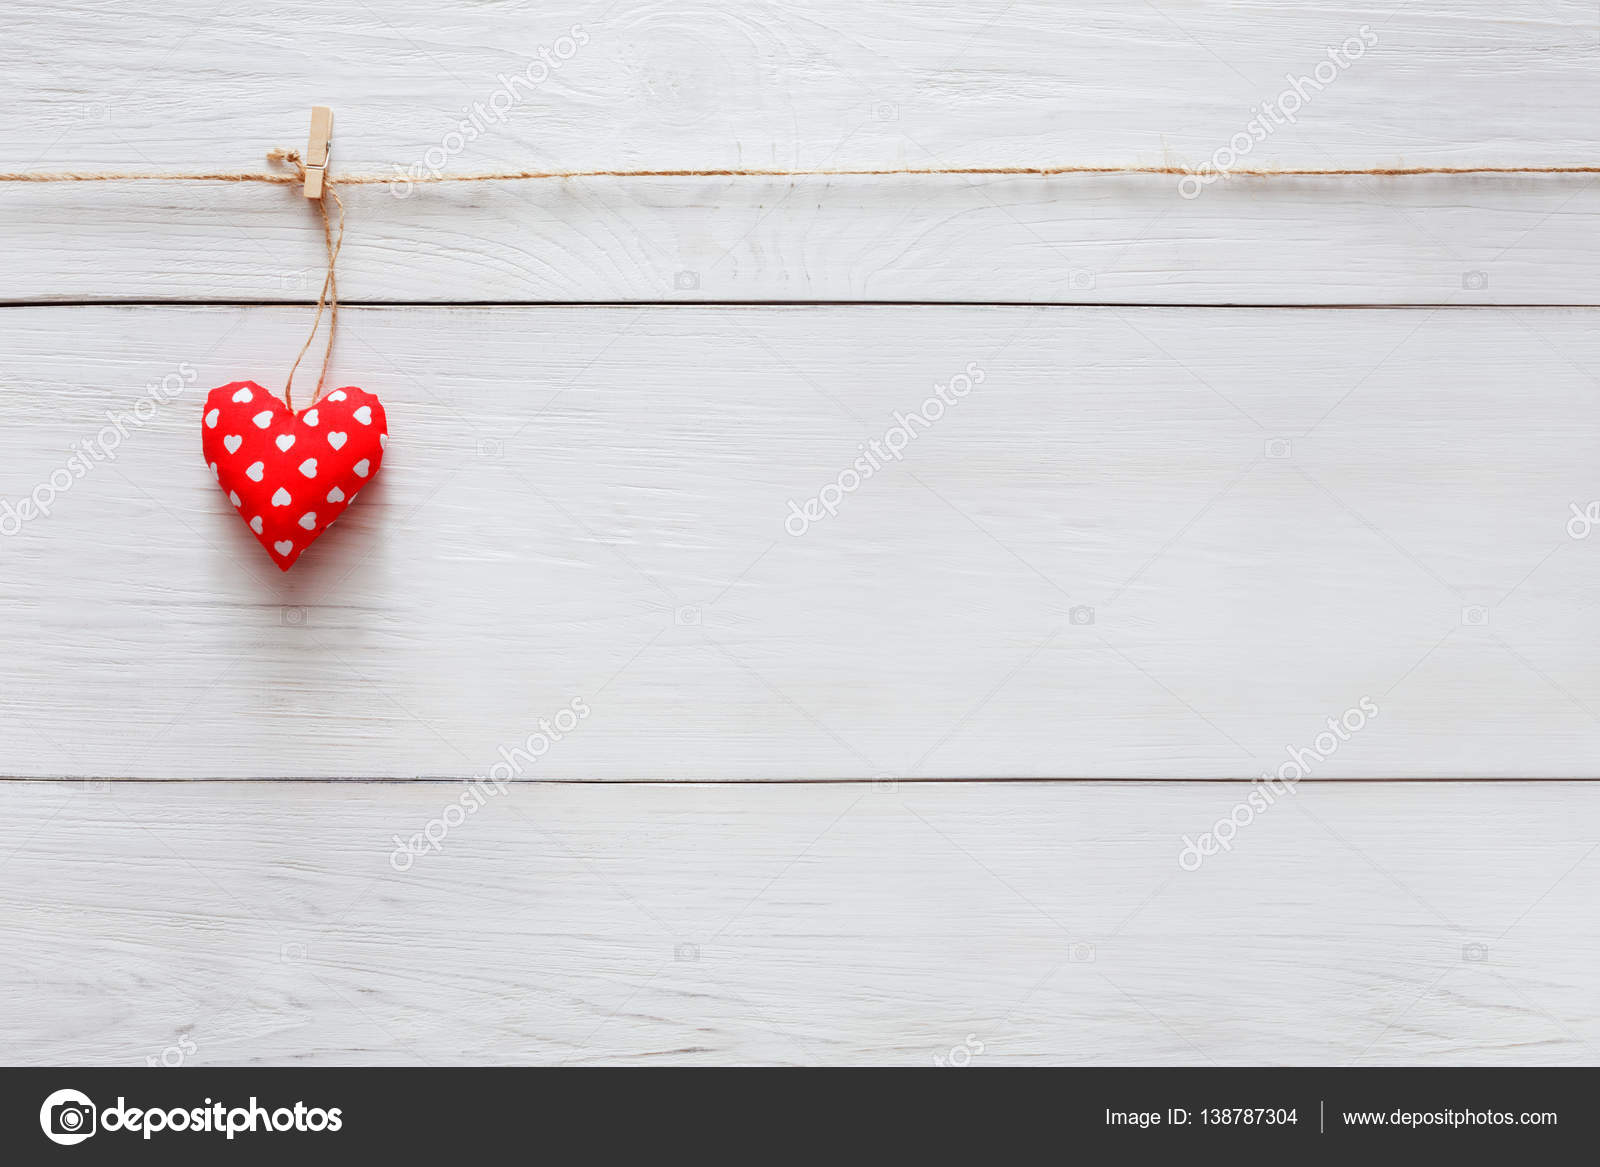 Valentine Day Love Background Pillow Heart On Wood Copy Space Stock Photo